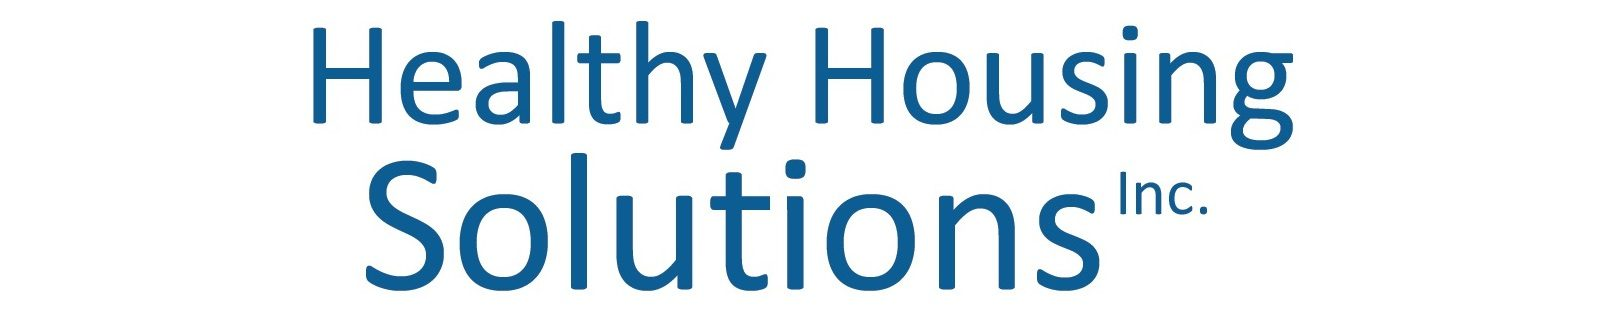 About Healthy Housing Solutions